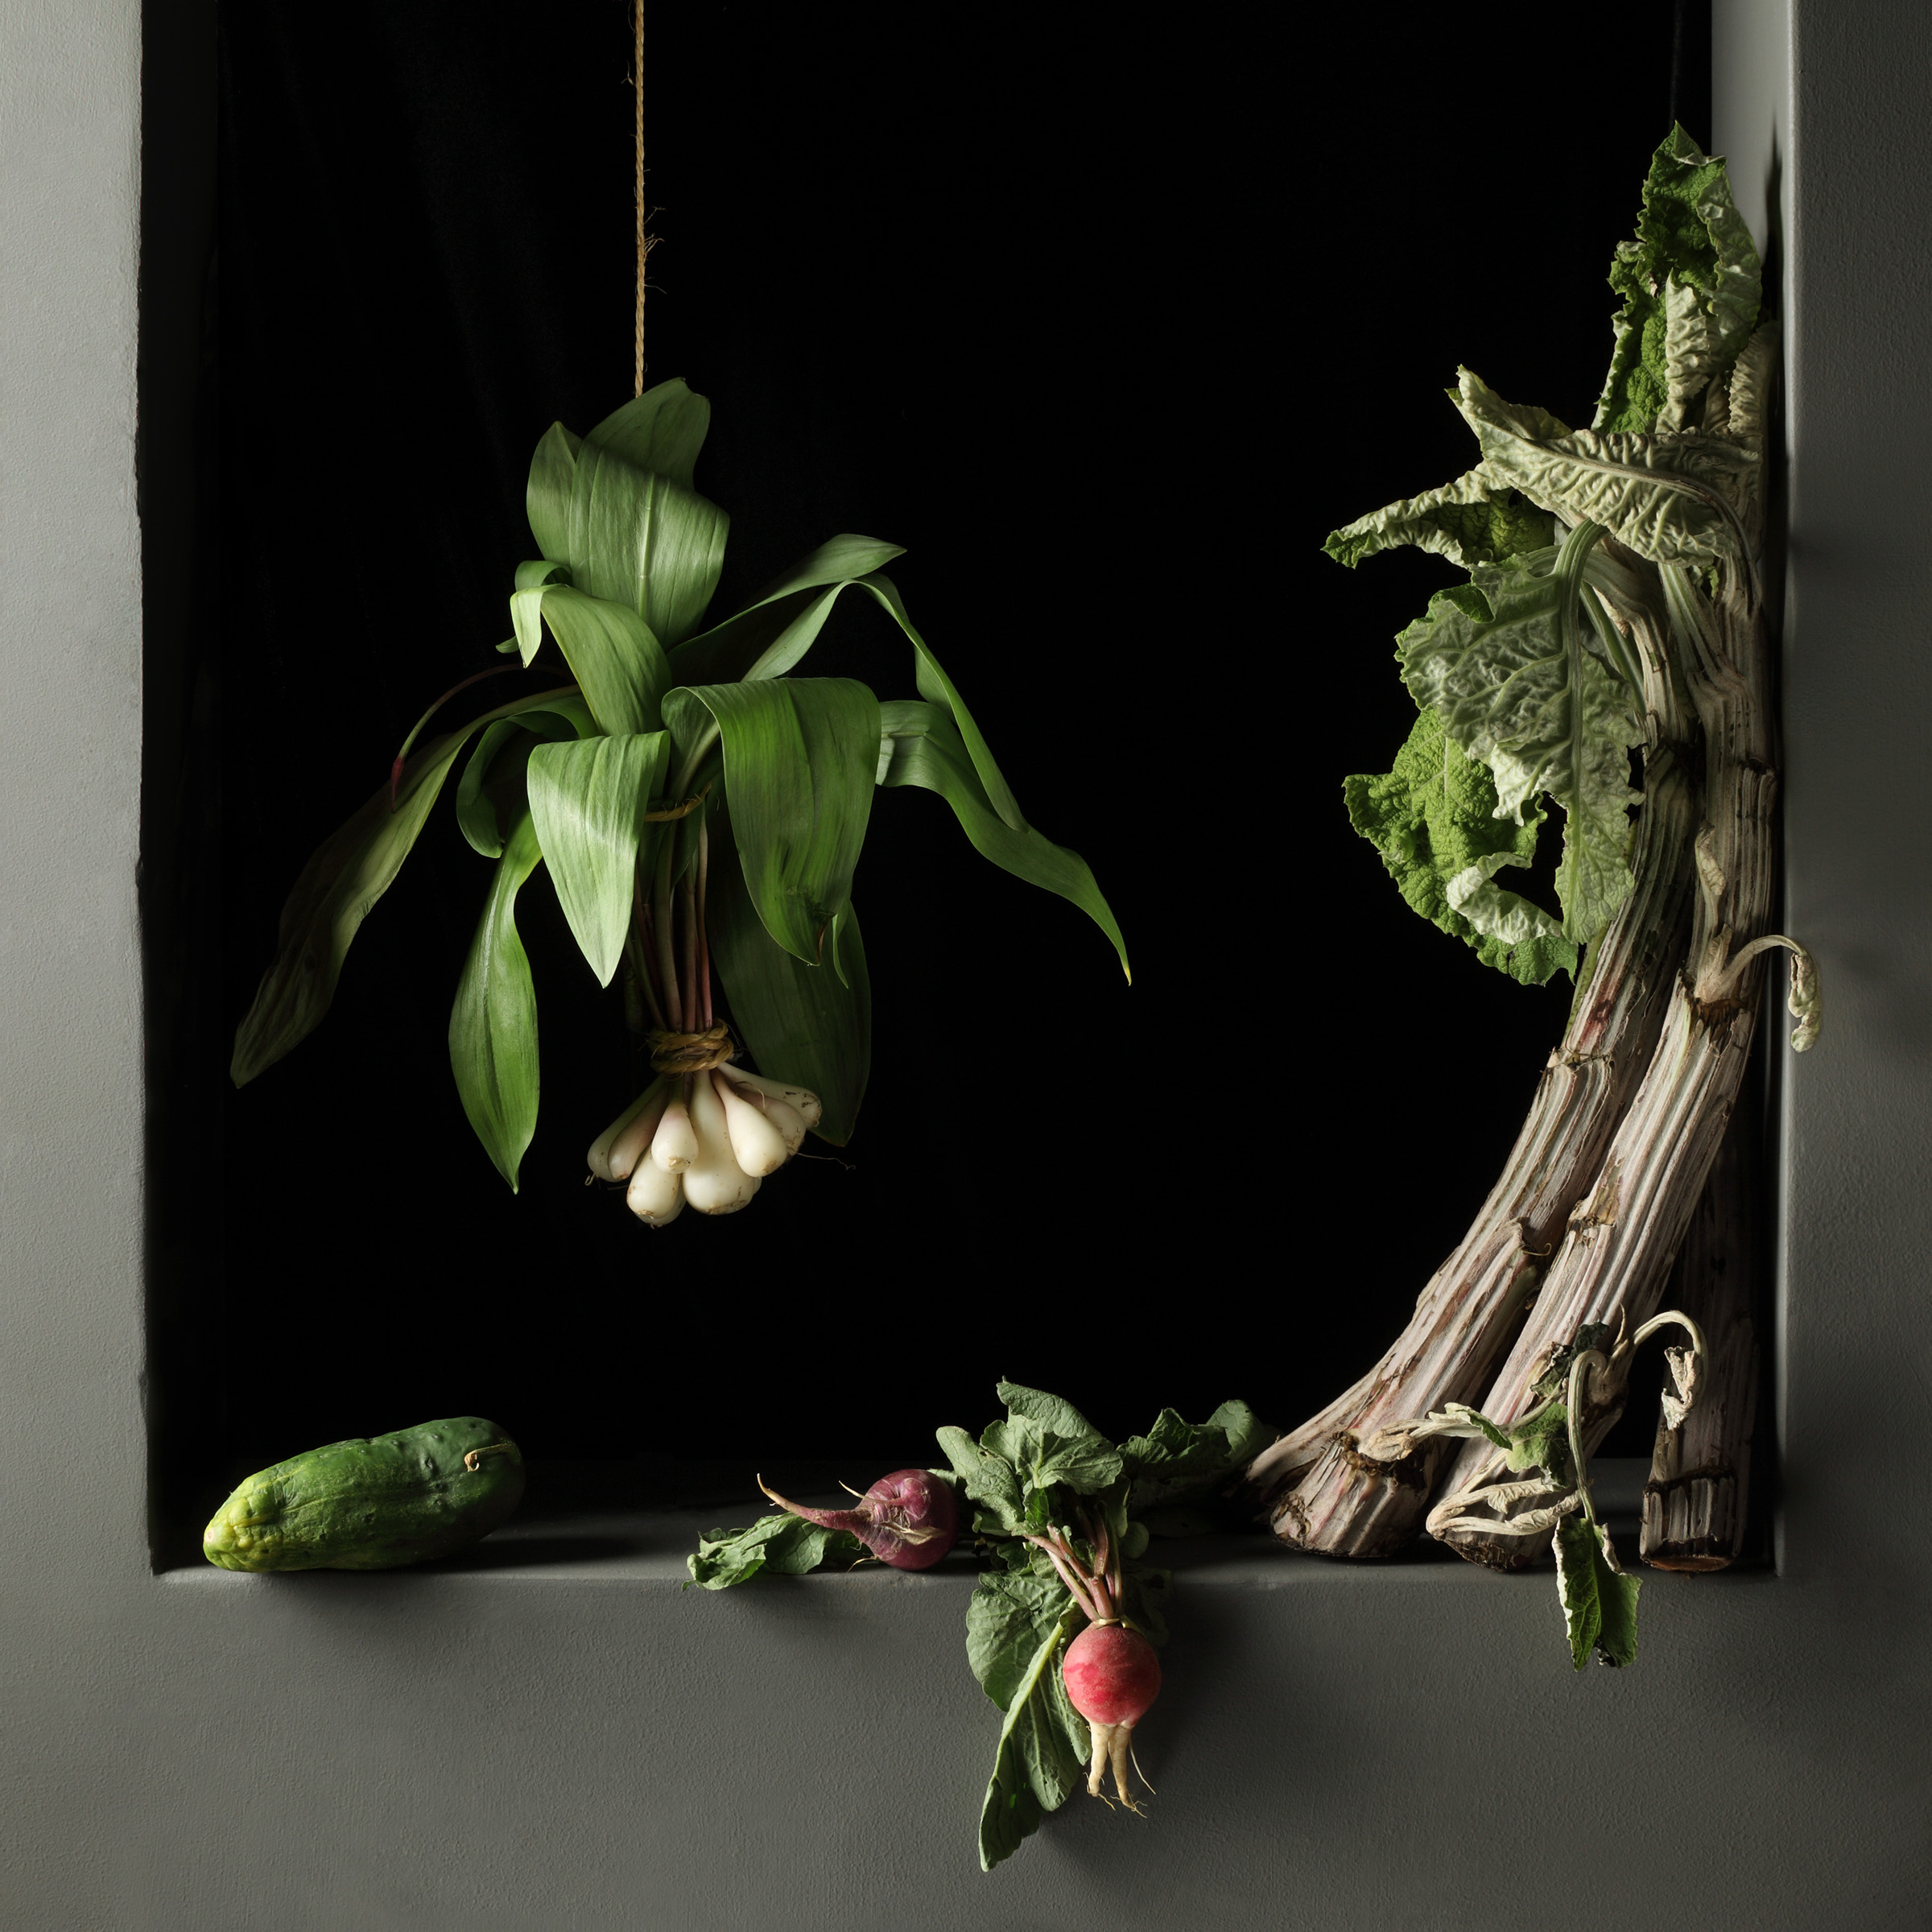 Cardoon and Radishes, After J.S.C., 2010